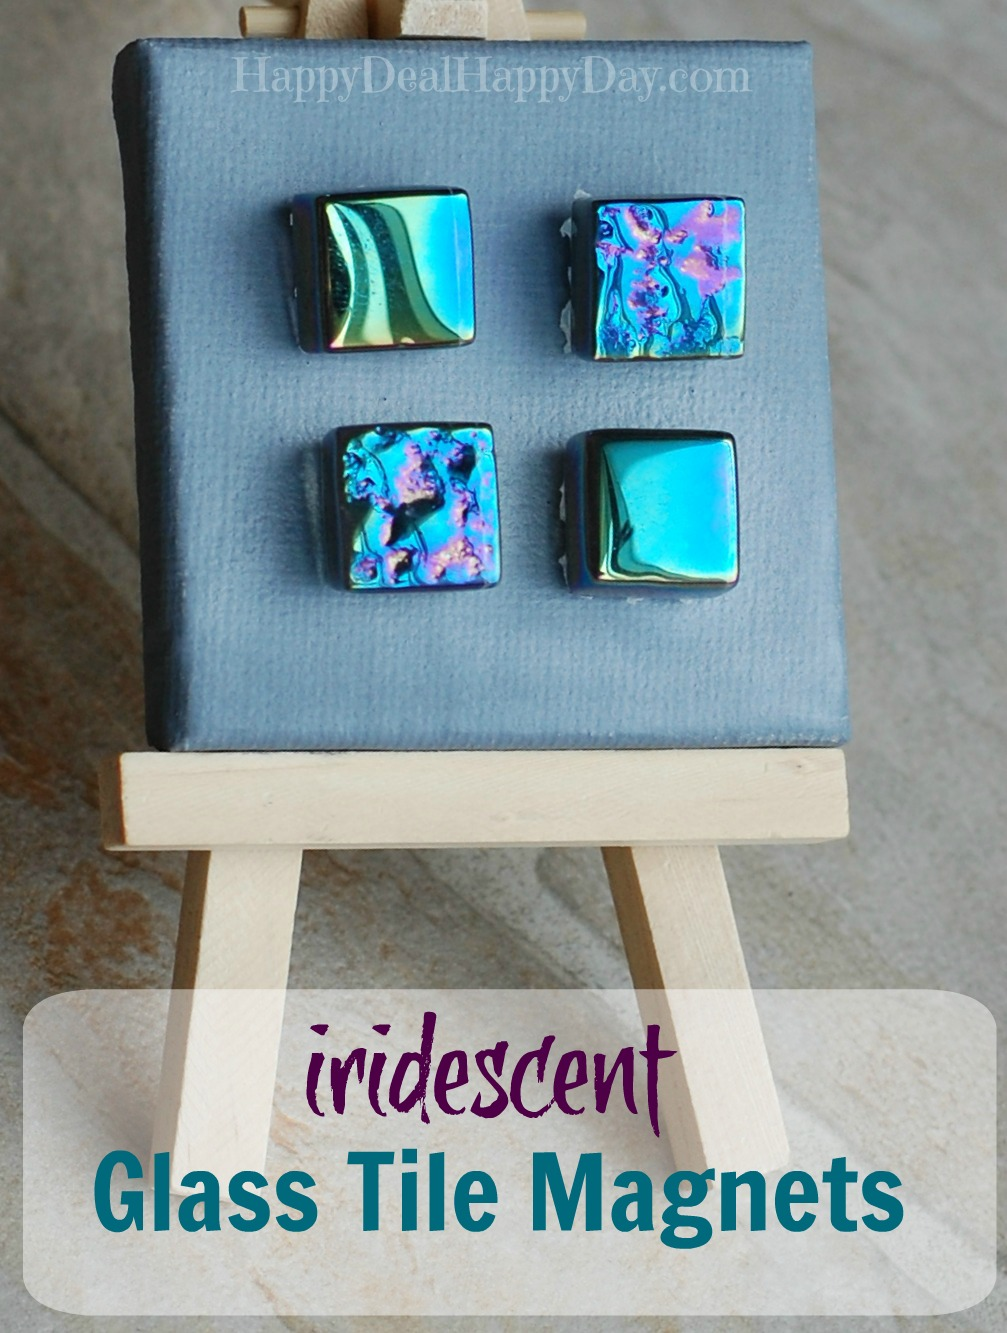 iridescent glass tile Magnets For Sale